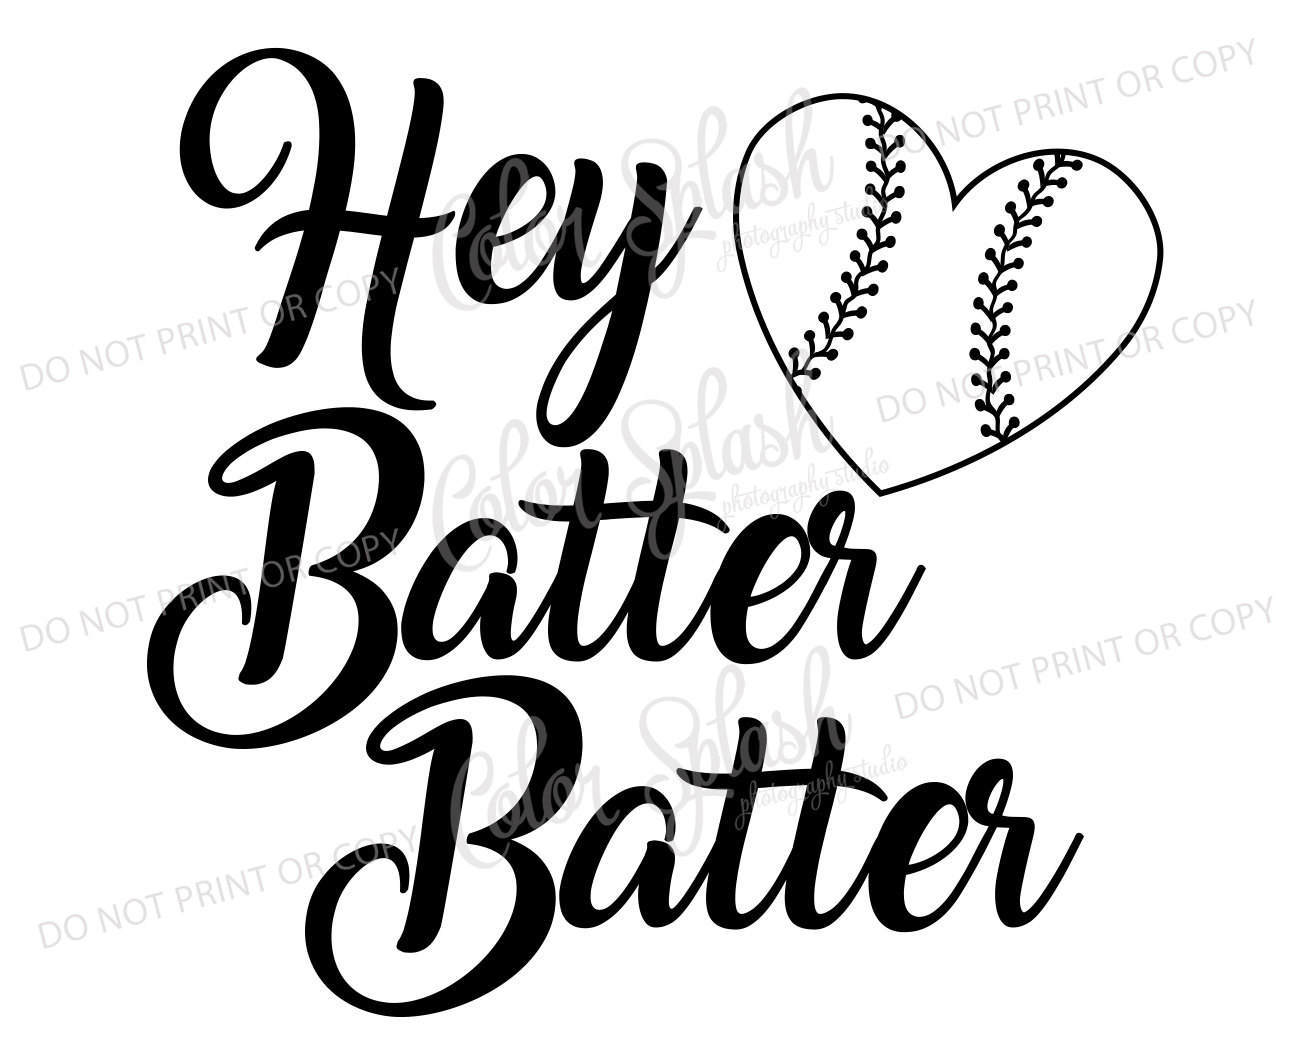 hight resolution of 1310x1064 hey batter batter svg dxf png eps cutting file silhouette